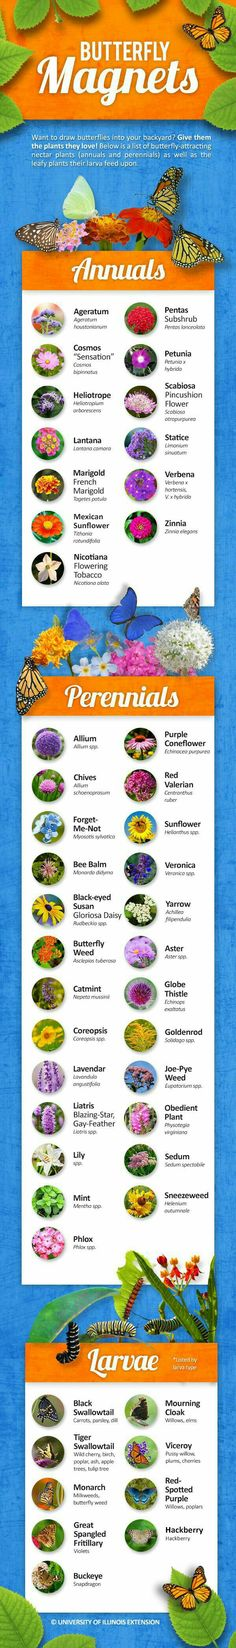 butterfly garden UPDATED Infographic: Want more butterflies in your yard Plant the nectar plants they love! Heres a great list of butterfly-attracting annual and perennial plants including those needed for butterfly larvae.